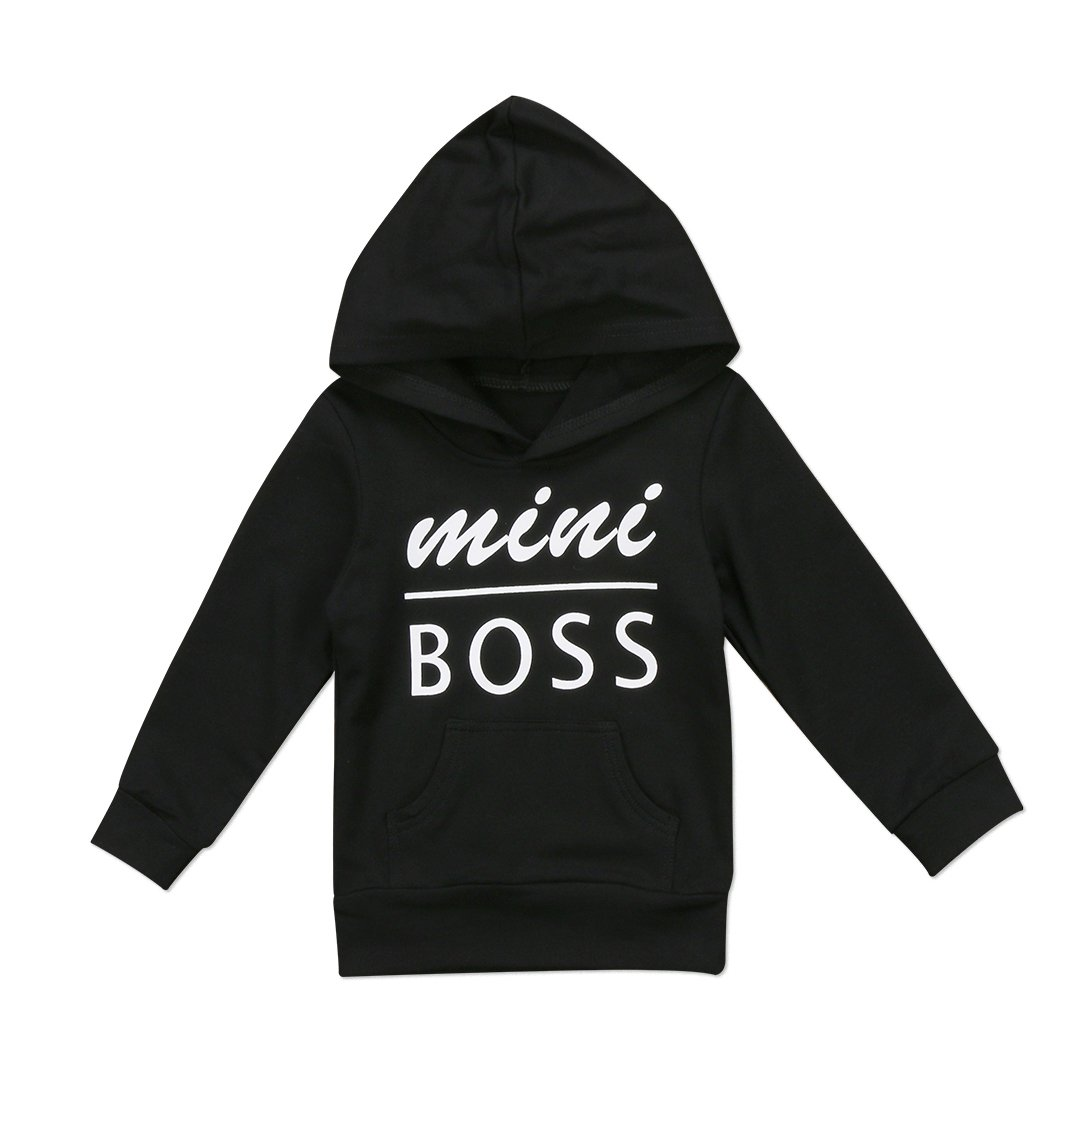 0-5T Baby Boy Girl Mini Boss Hoodie Tops Toddler Hooded Sweater Casual Hoodies with Pocket Outdoor Outfit (2-3 Years, Black) by Urkutoba